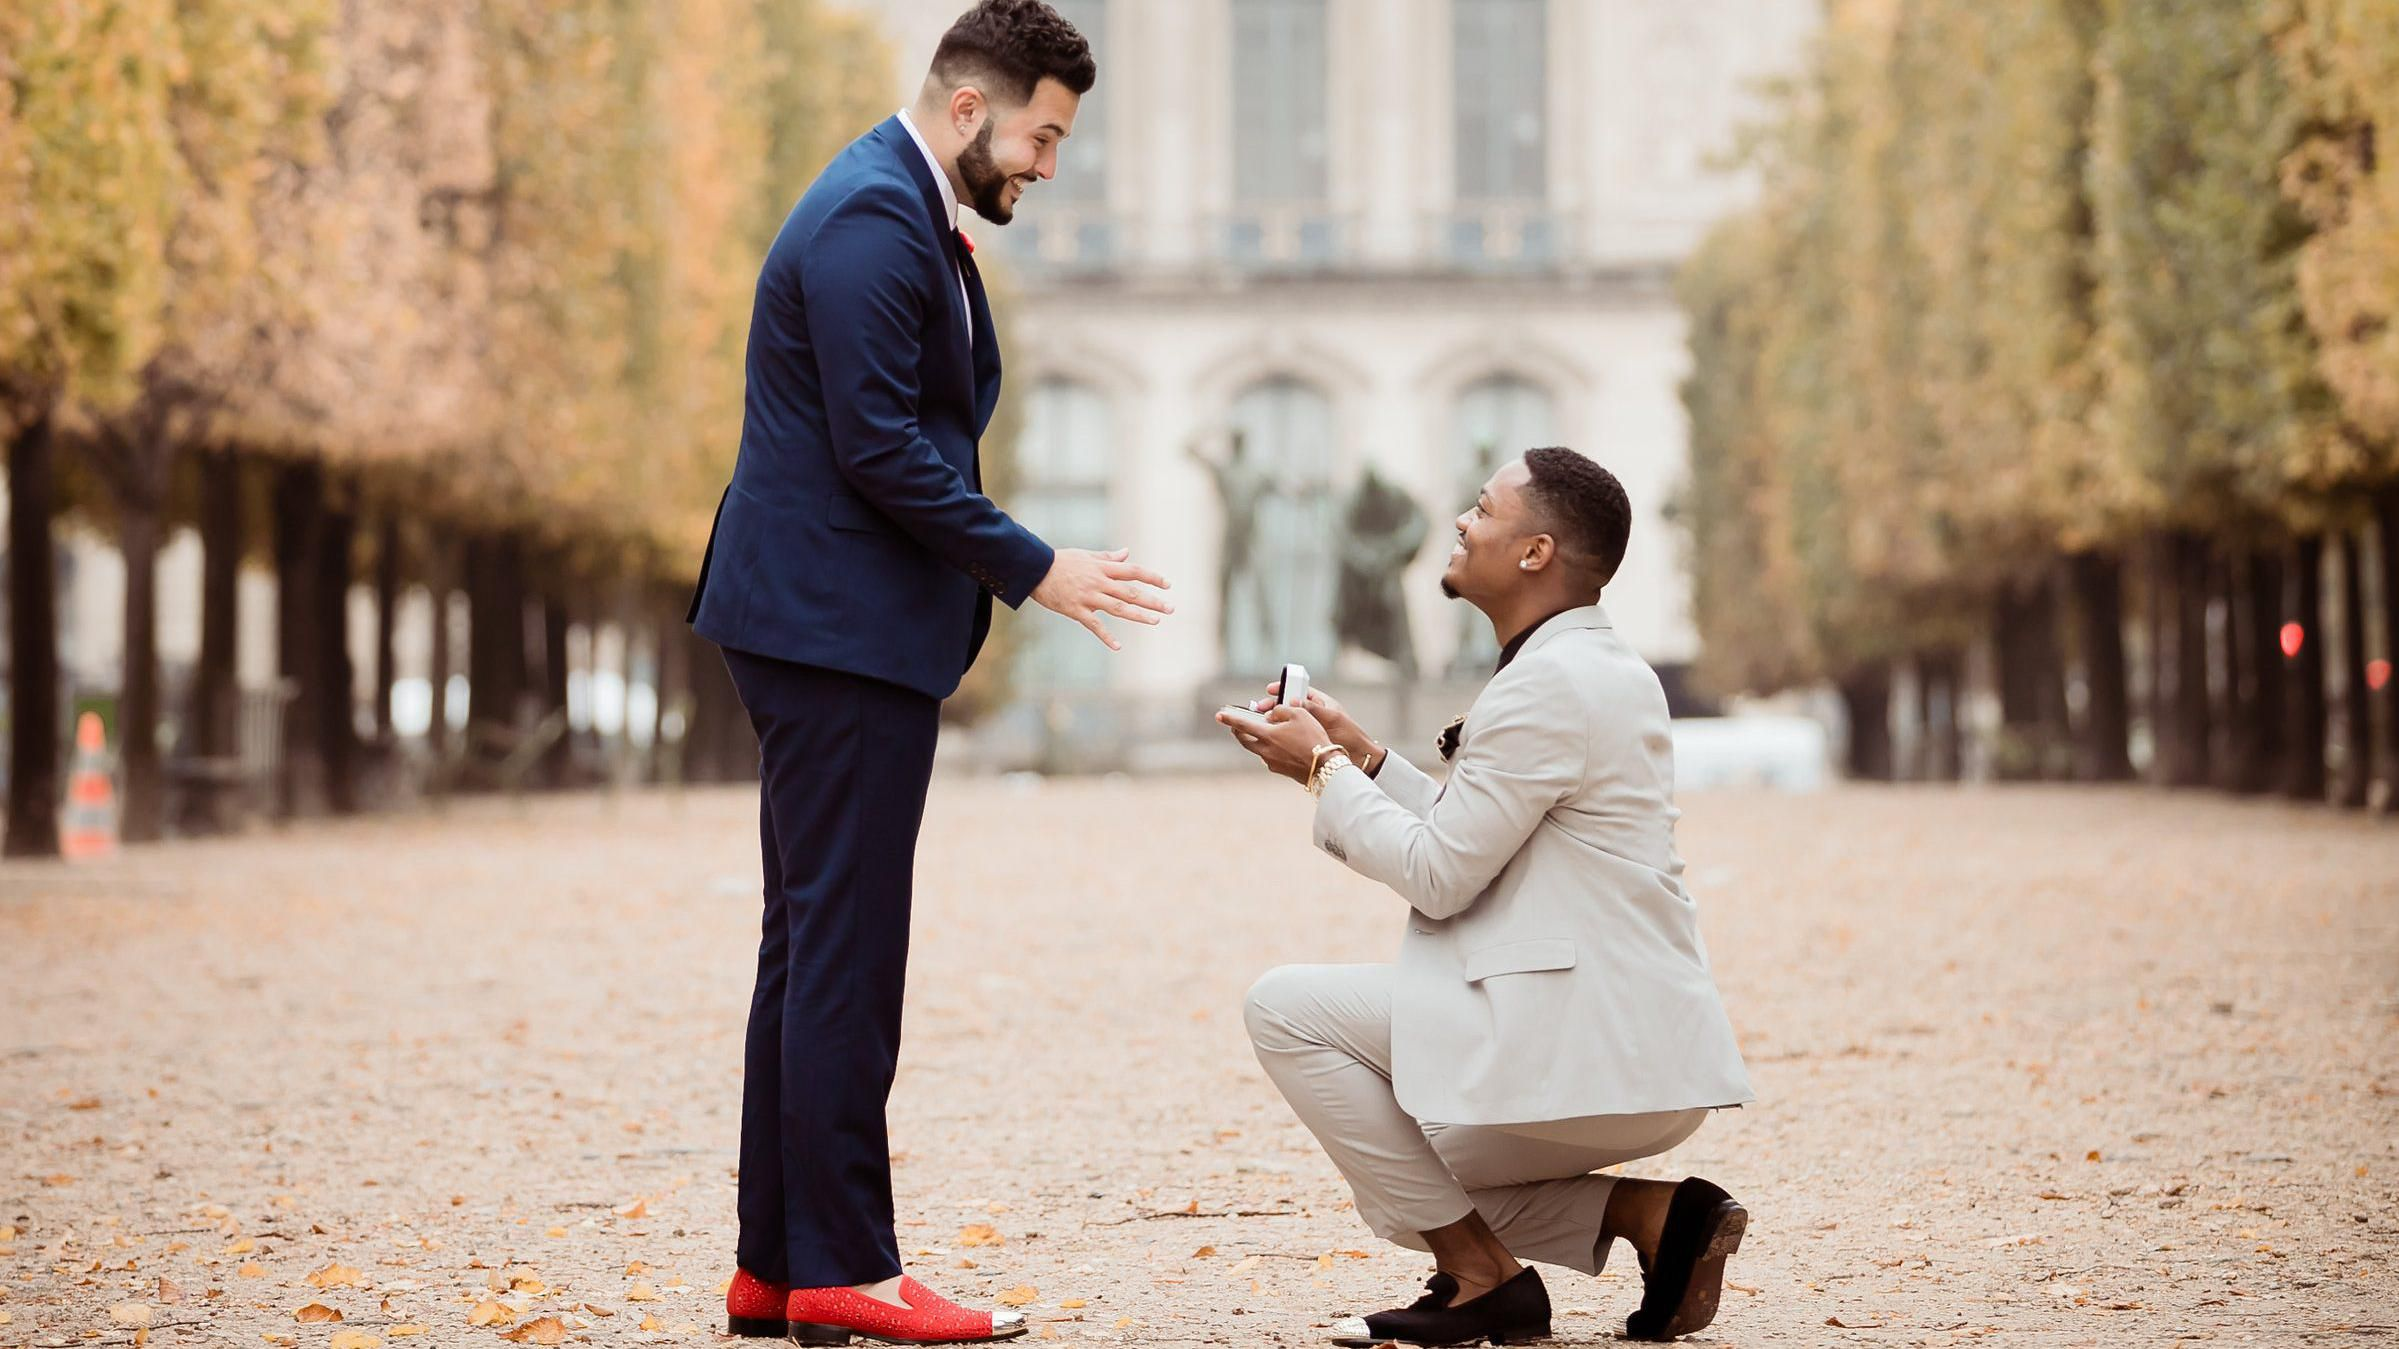 The 9 Signs Your Partner is About to Propose